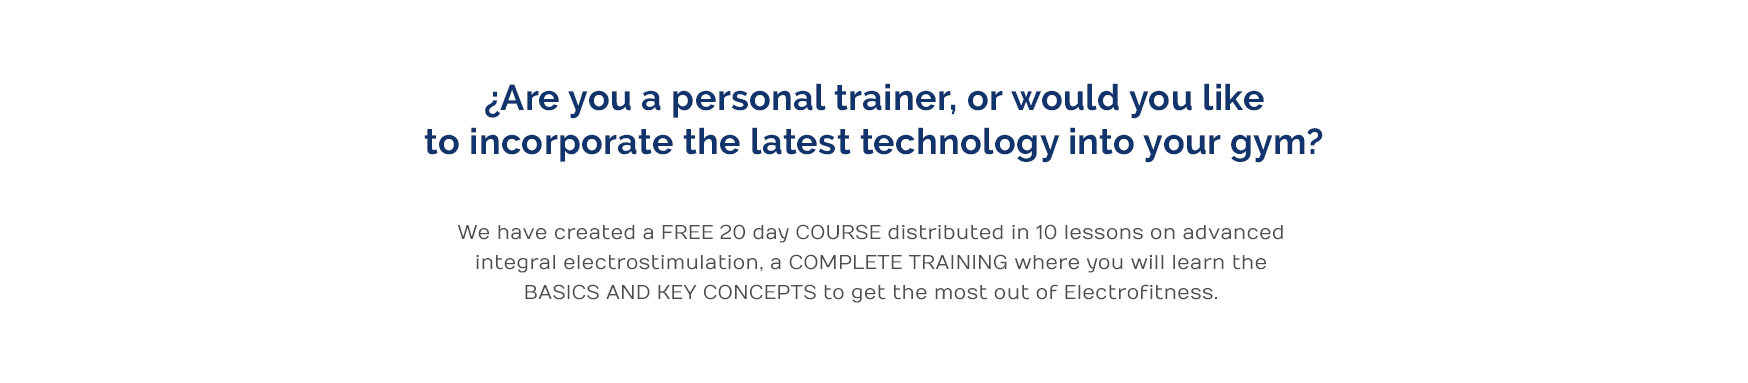 Free electrofitness course distributed in 10 sessions by email